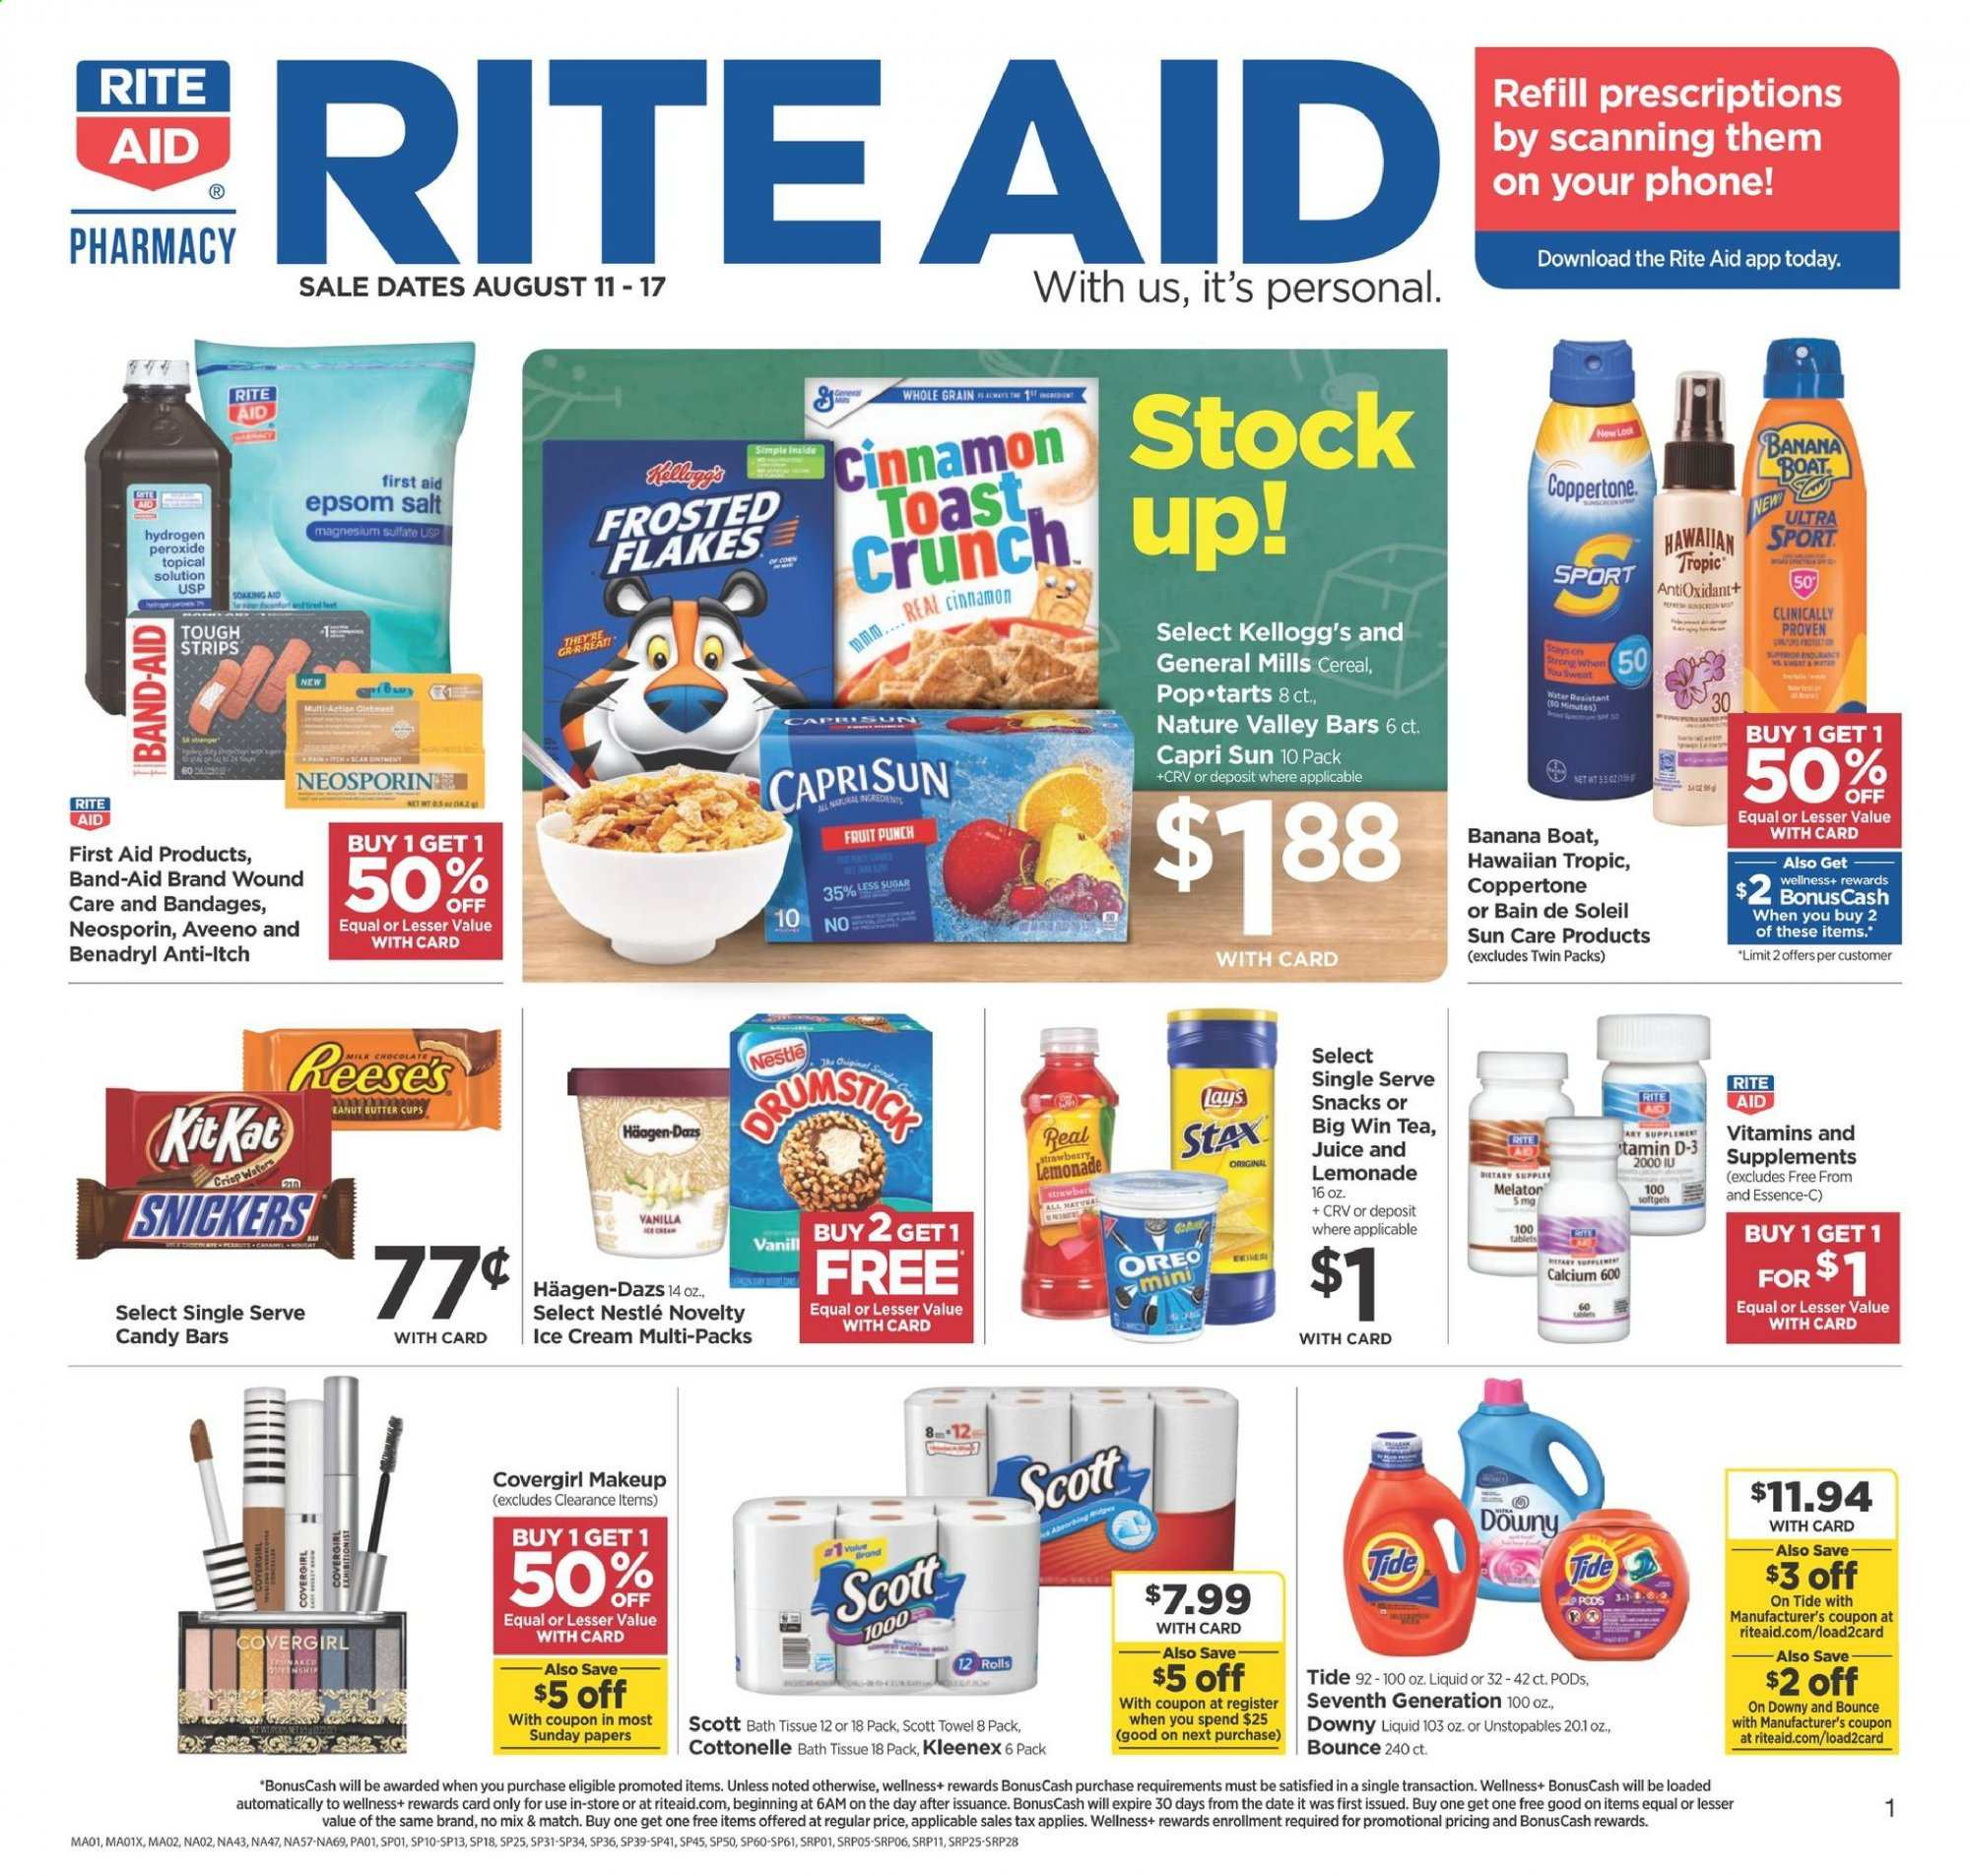 RITE AID Flyer - 08.11.2019 - 08.17.2019 - Sales products - Scott, rolls, ice cream, Oreo, Nestlé, candy, snack, salt, strawberries, cereals, Capri Sun, lemonade, juice, water, tea, Aveeno, ointment, bath tissue, Cottonelle, Kleenex, Downy, Tide, Unstopables, makeup, calcium, Magnesium, Neosporin, band-aid. Page 1.